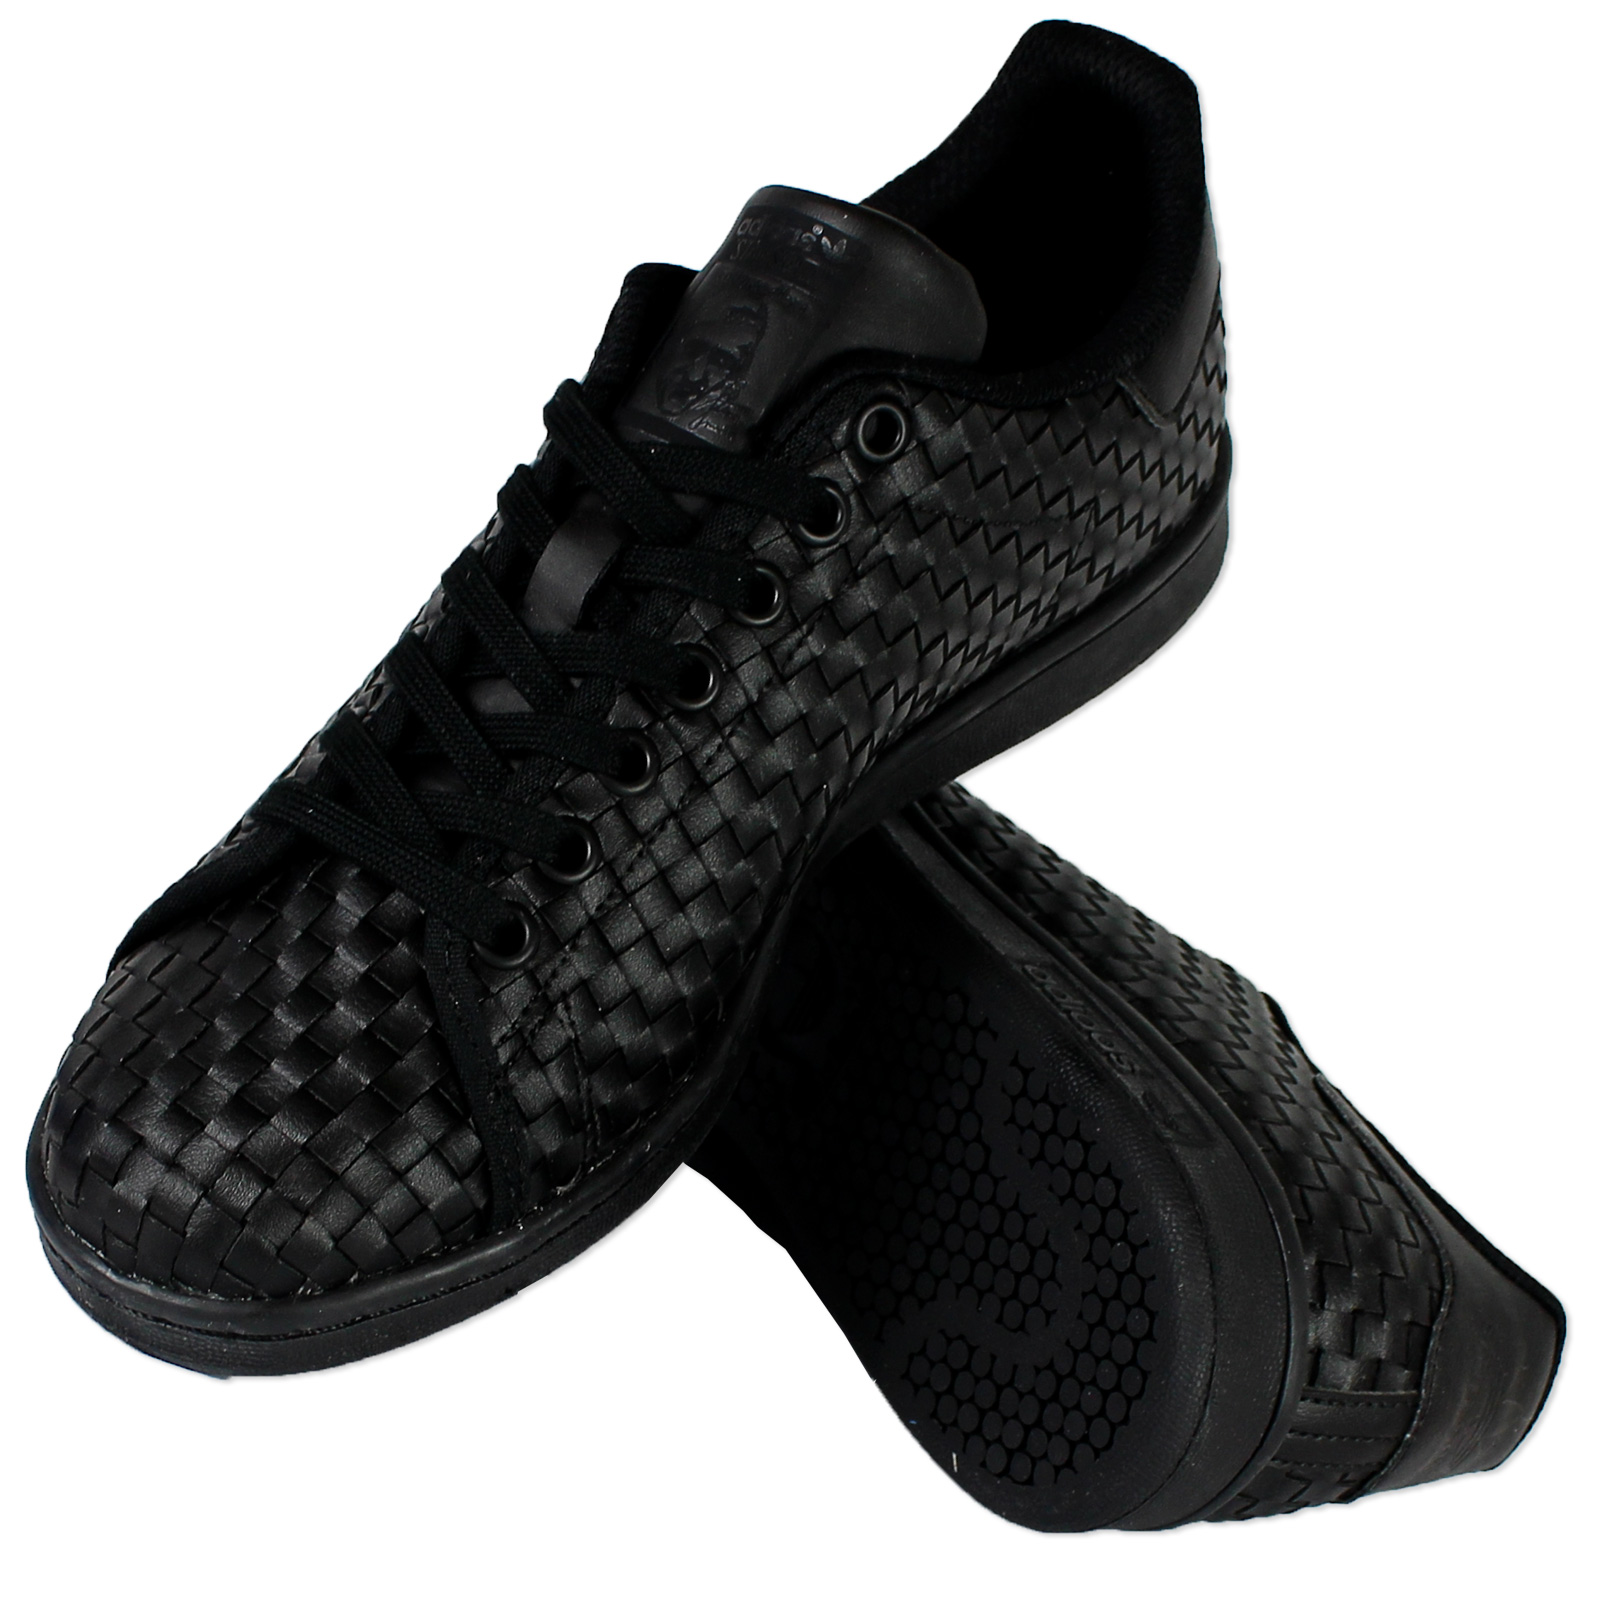 chaussures de sport 0b8ad 2549e adidas Originals Stan Smith Damen Sneaker Woven Turnschuhe Triple Black  Schwarz